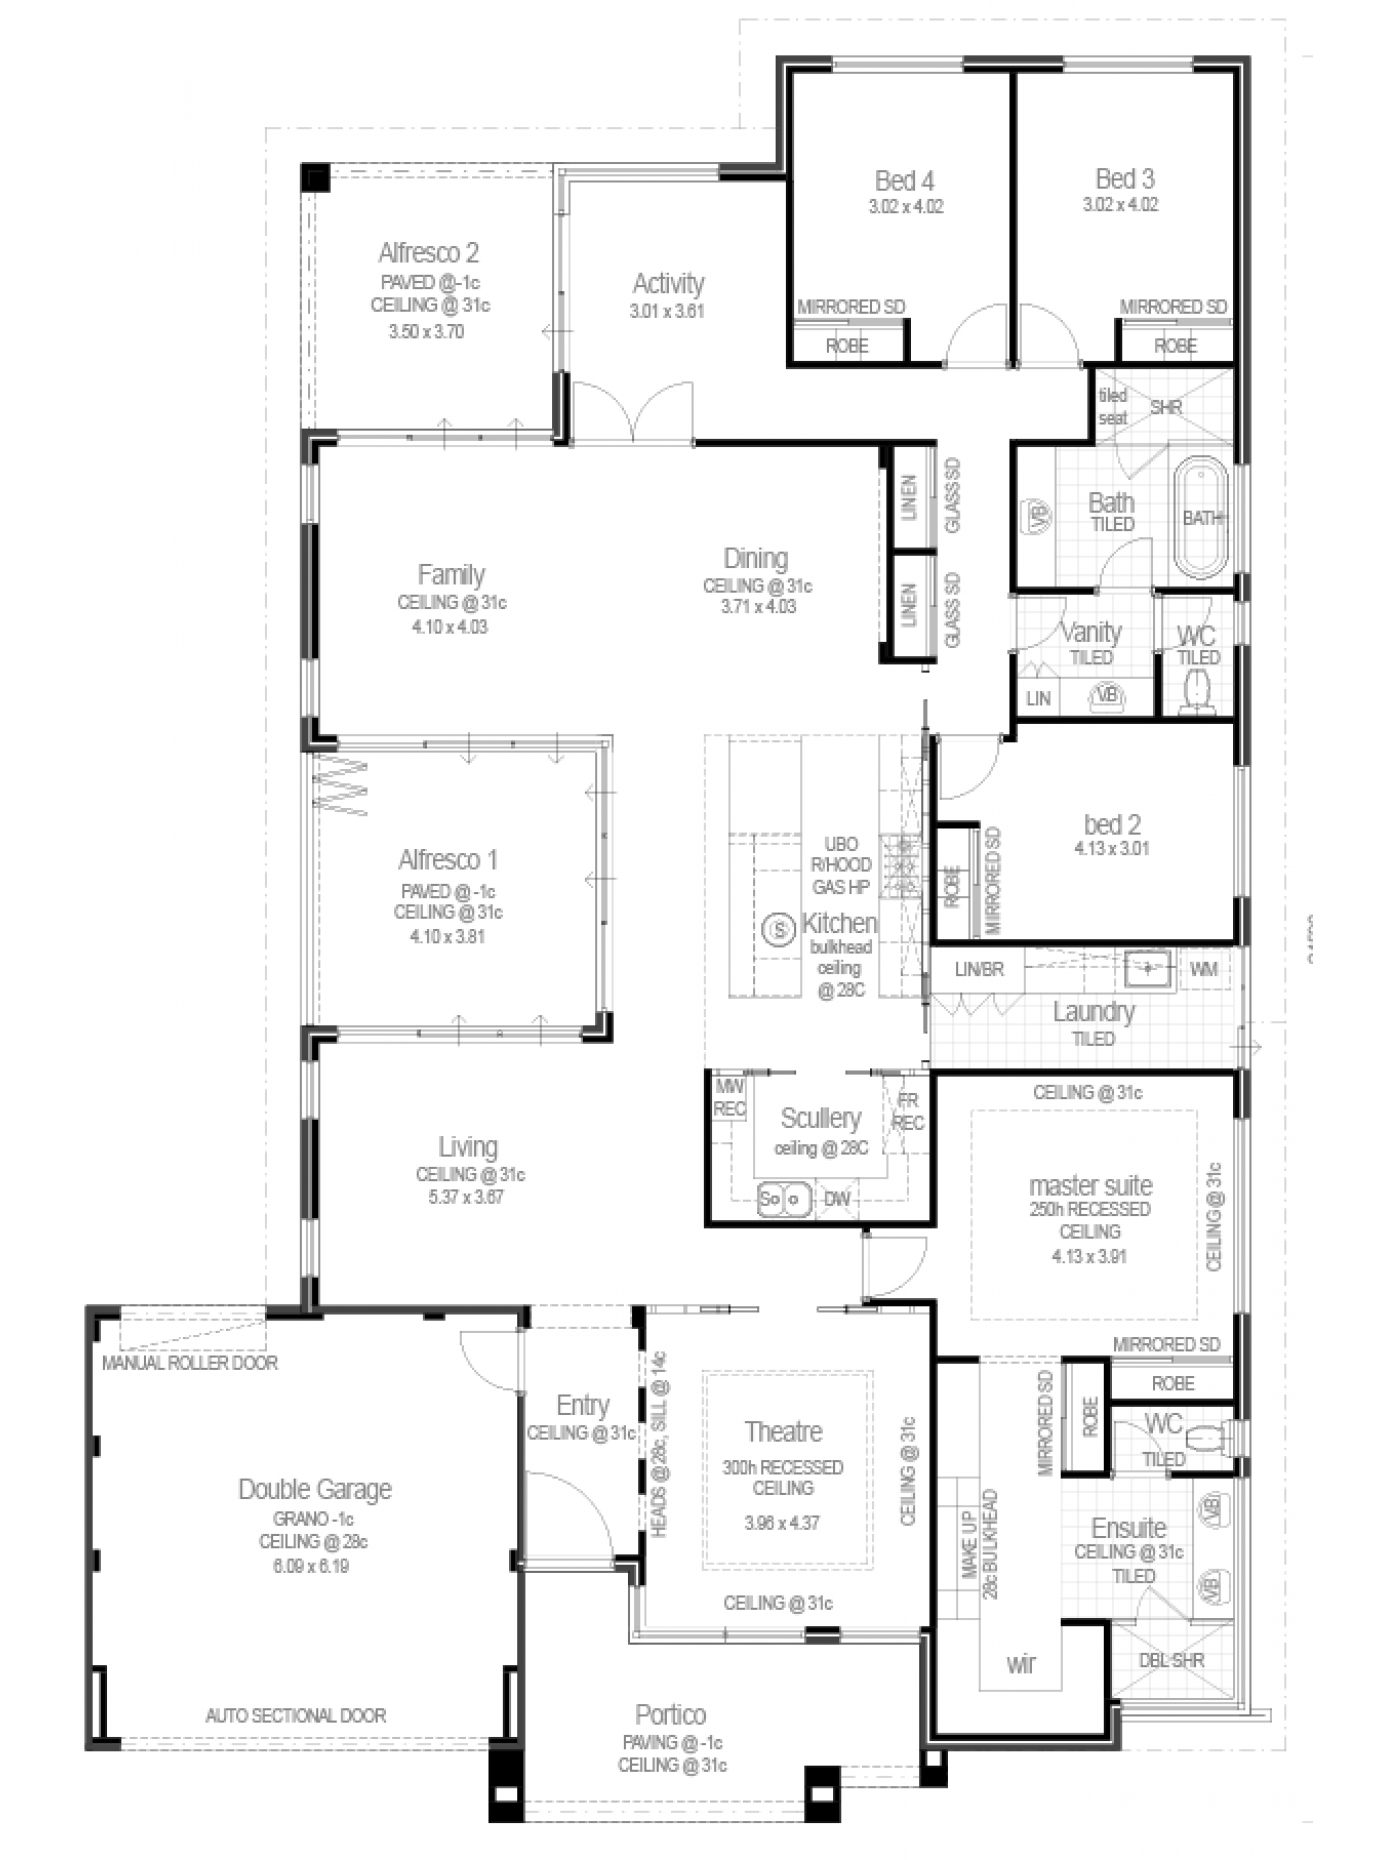 The hamlin display home by red ink homes in rivergums baldivis the hamlin display home by red ink homes in rivergums baldivis perth newhousing malvernweather Choice Image